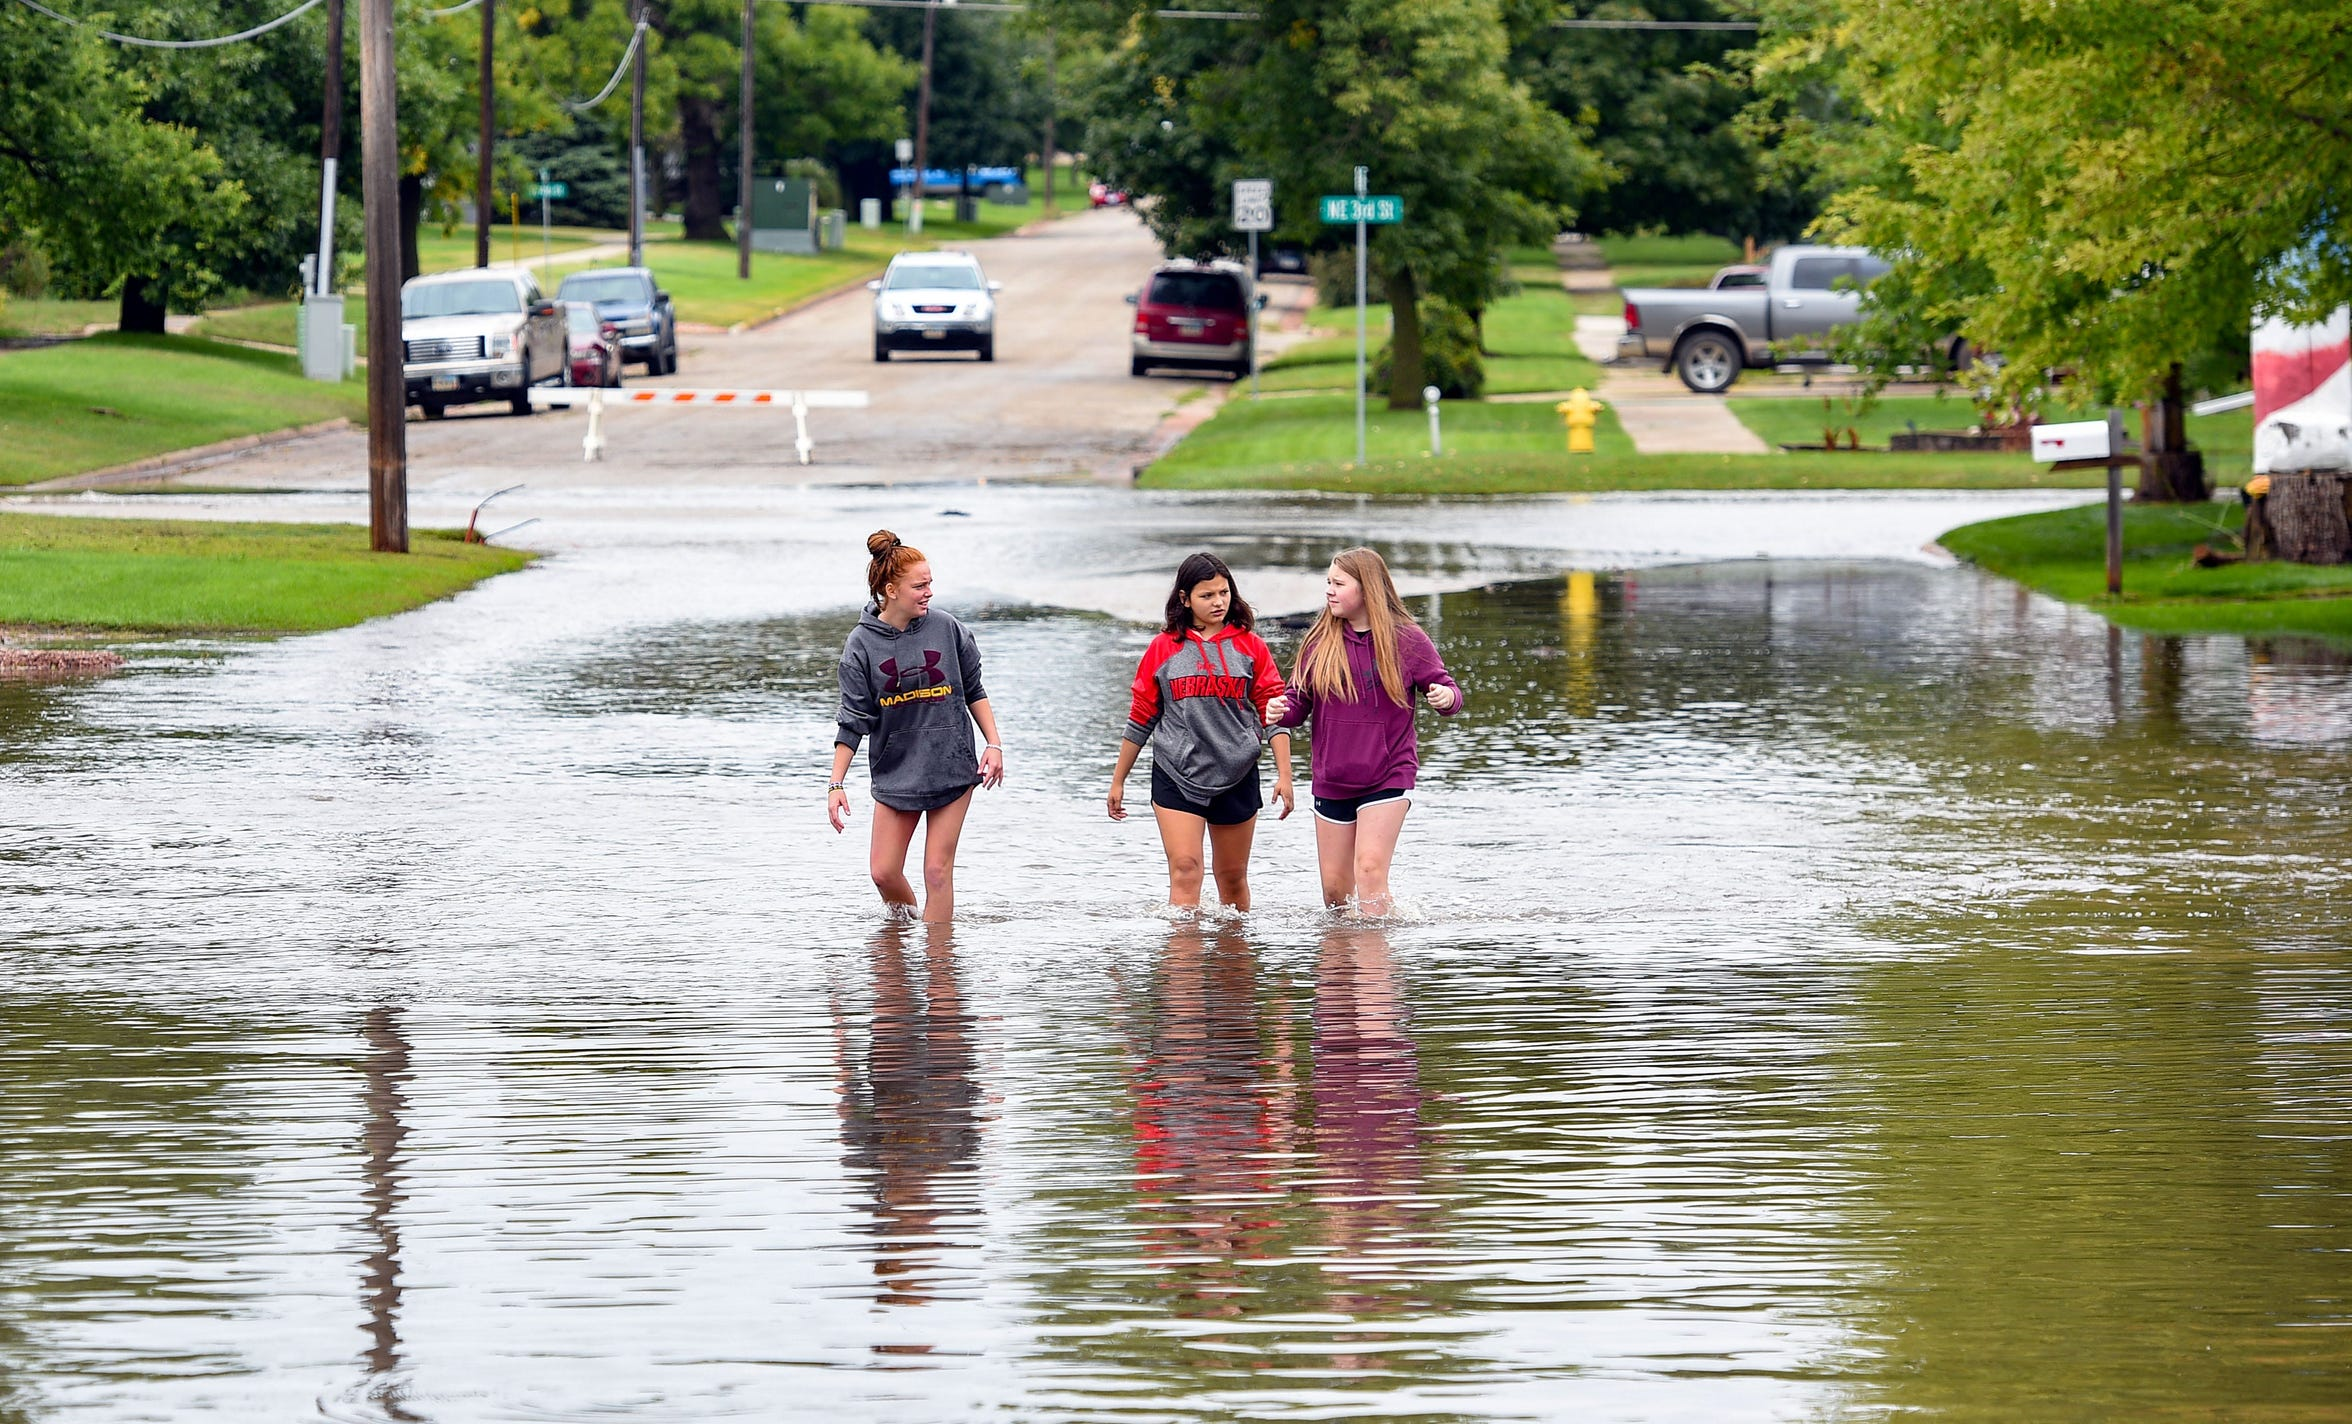 Teenagers Karizma Schooler, Tiana Deleon and Izabella Lawson walk through knee-high water on their way to visit Lawson's grandmother after extreme flooding Thursday, September 12, 2019 in Madison.